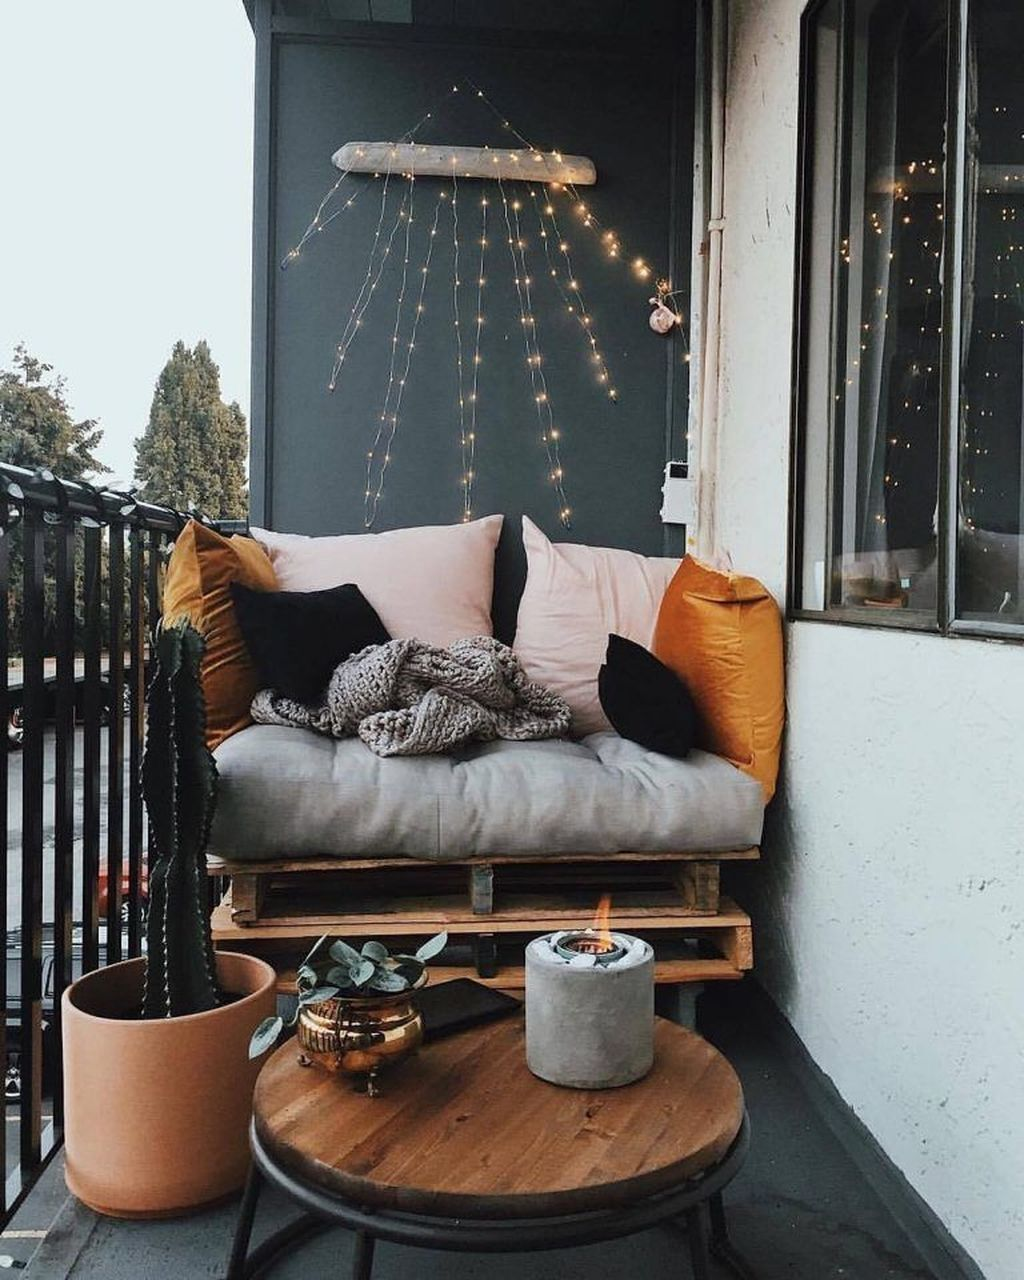 99 Diy Apartement Decorating Ideas On A Budget 23: 40+ Splendid Balcony Decorating Ideas On A Budget To Try